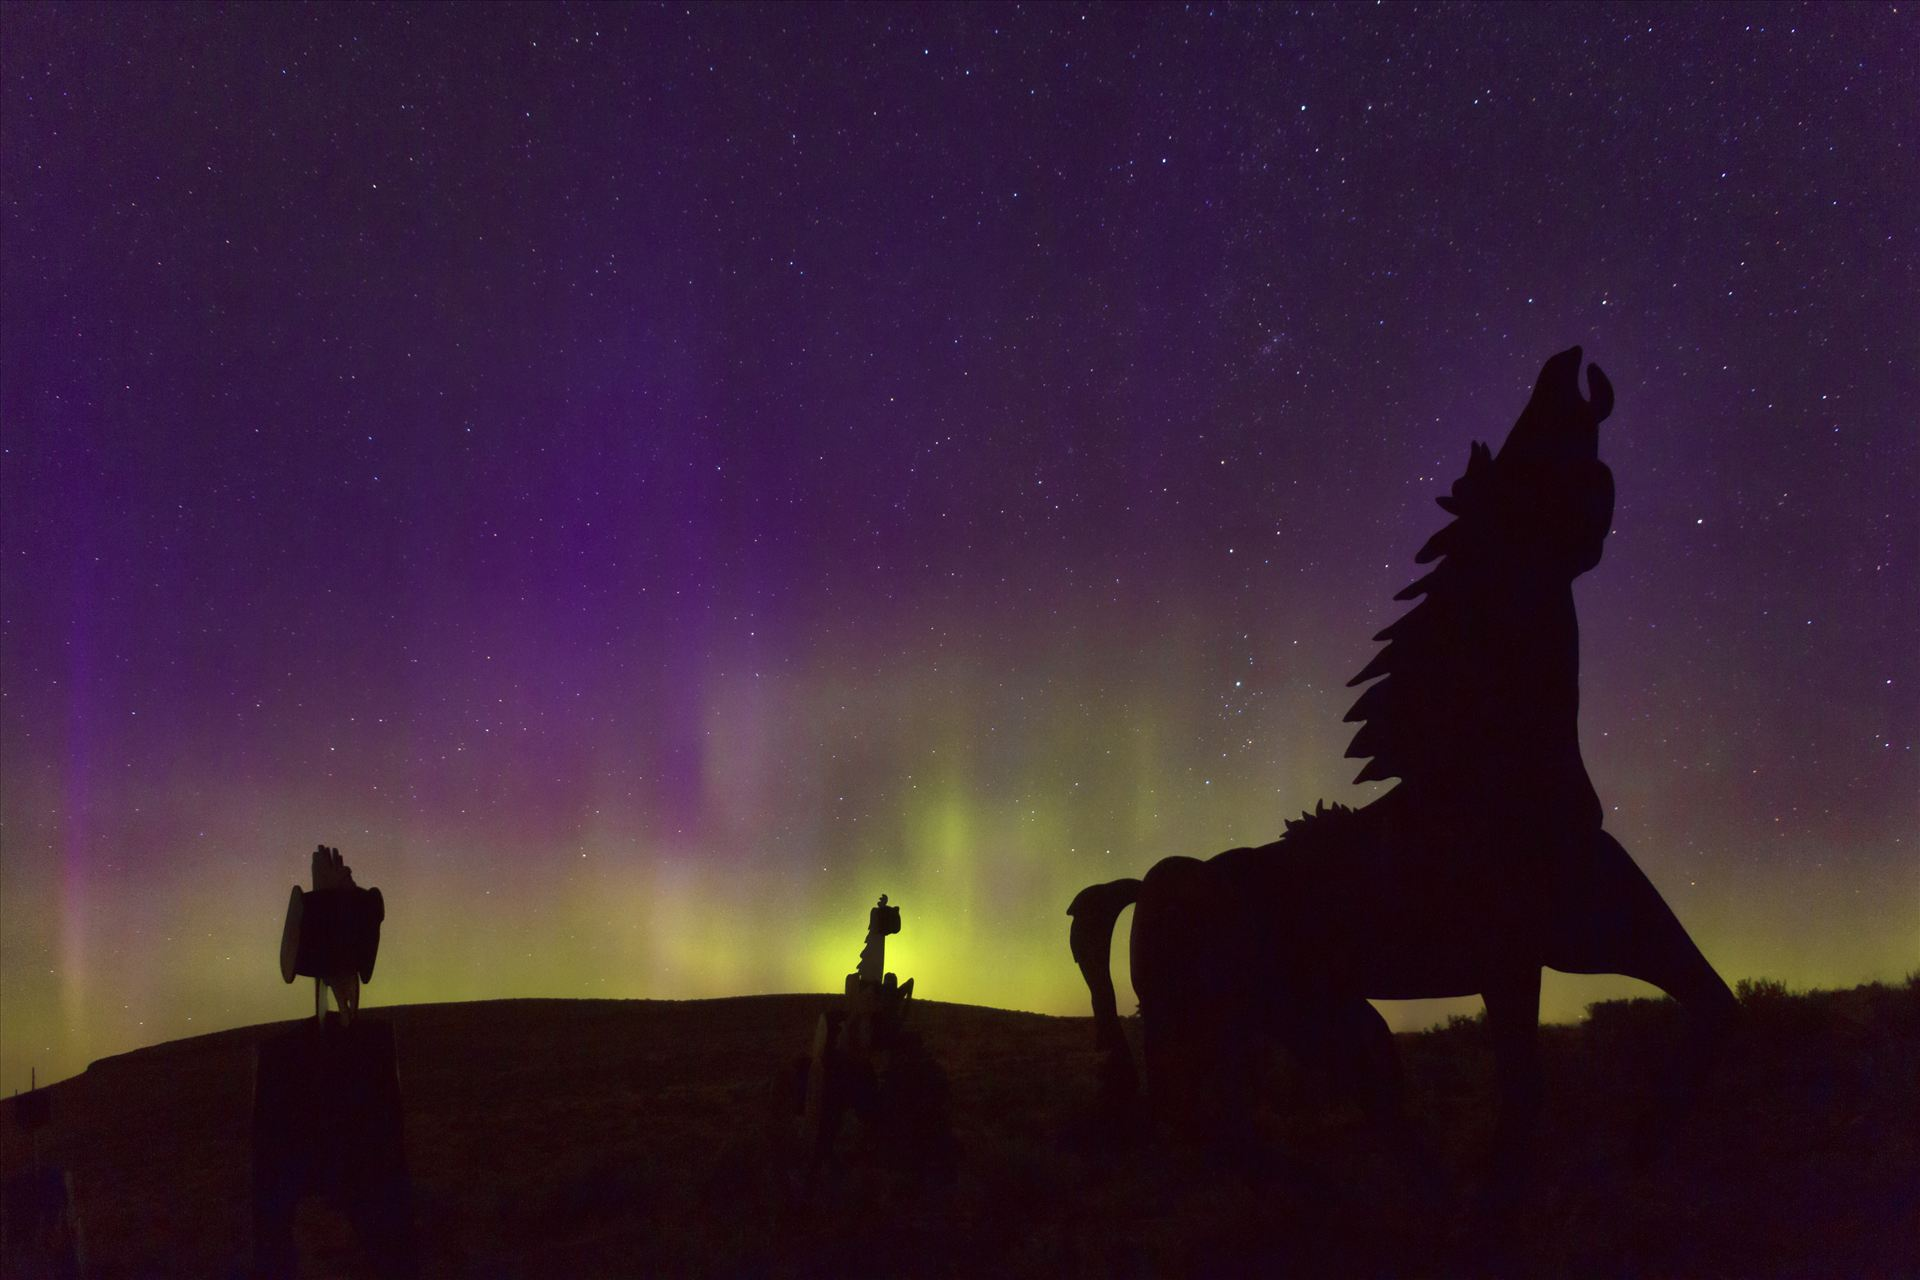 Horseplay in the Northern Lights - This was taken at the Wild Horse Monument at Vantage, Washington.  The Auroras put on quite a show that night. by Bear Conceptions Photography